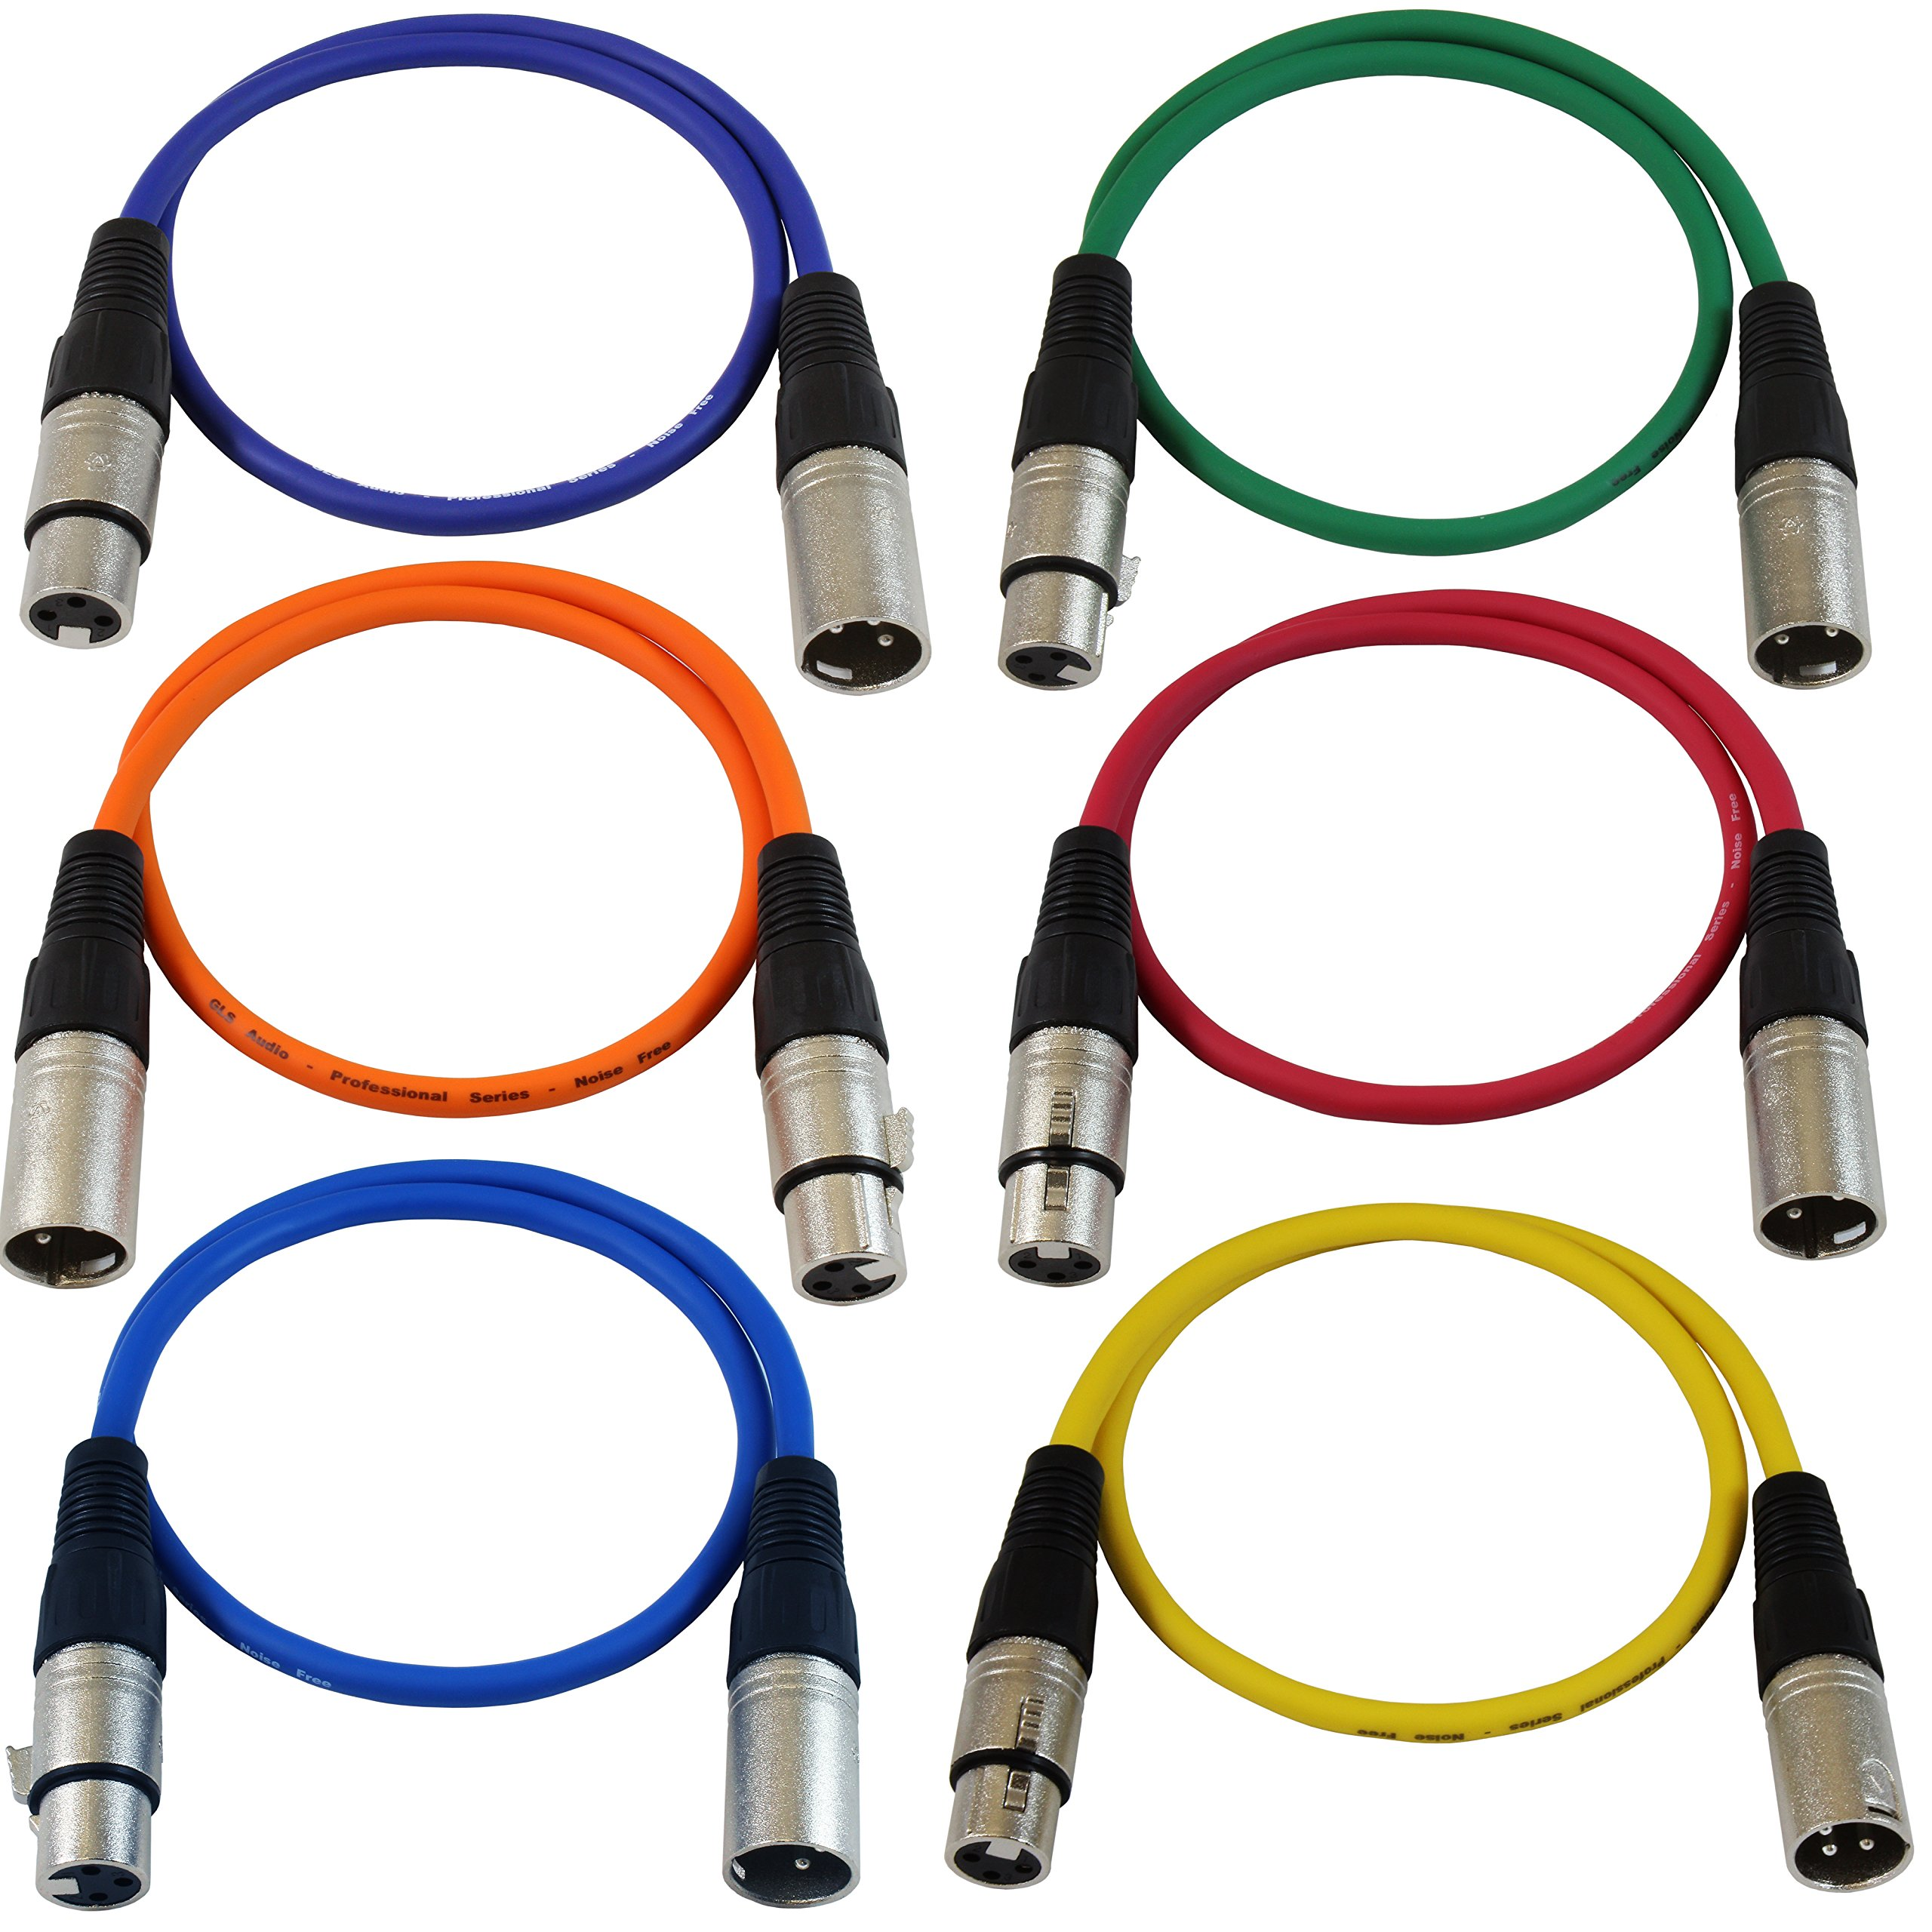 GLS Audio 2ft Patch Cable Cords - XLR Male to XLR Female Color Cables - 2' Balanced Snake Cord - 6 PACK by GLS Audio